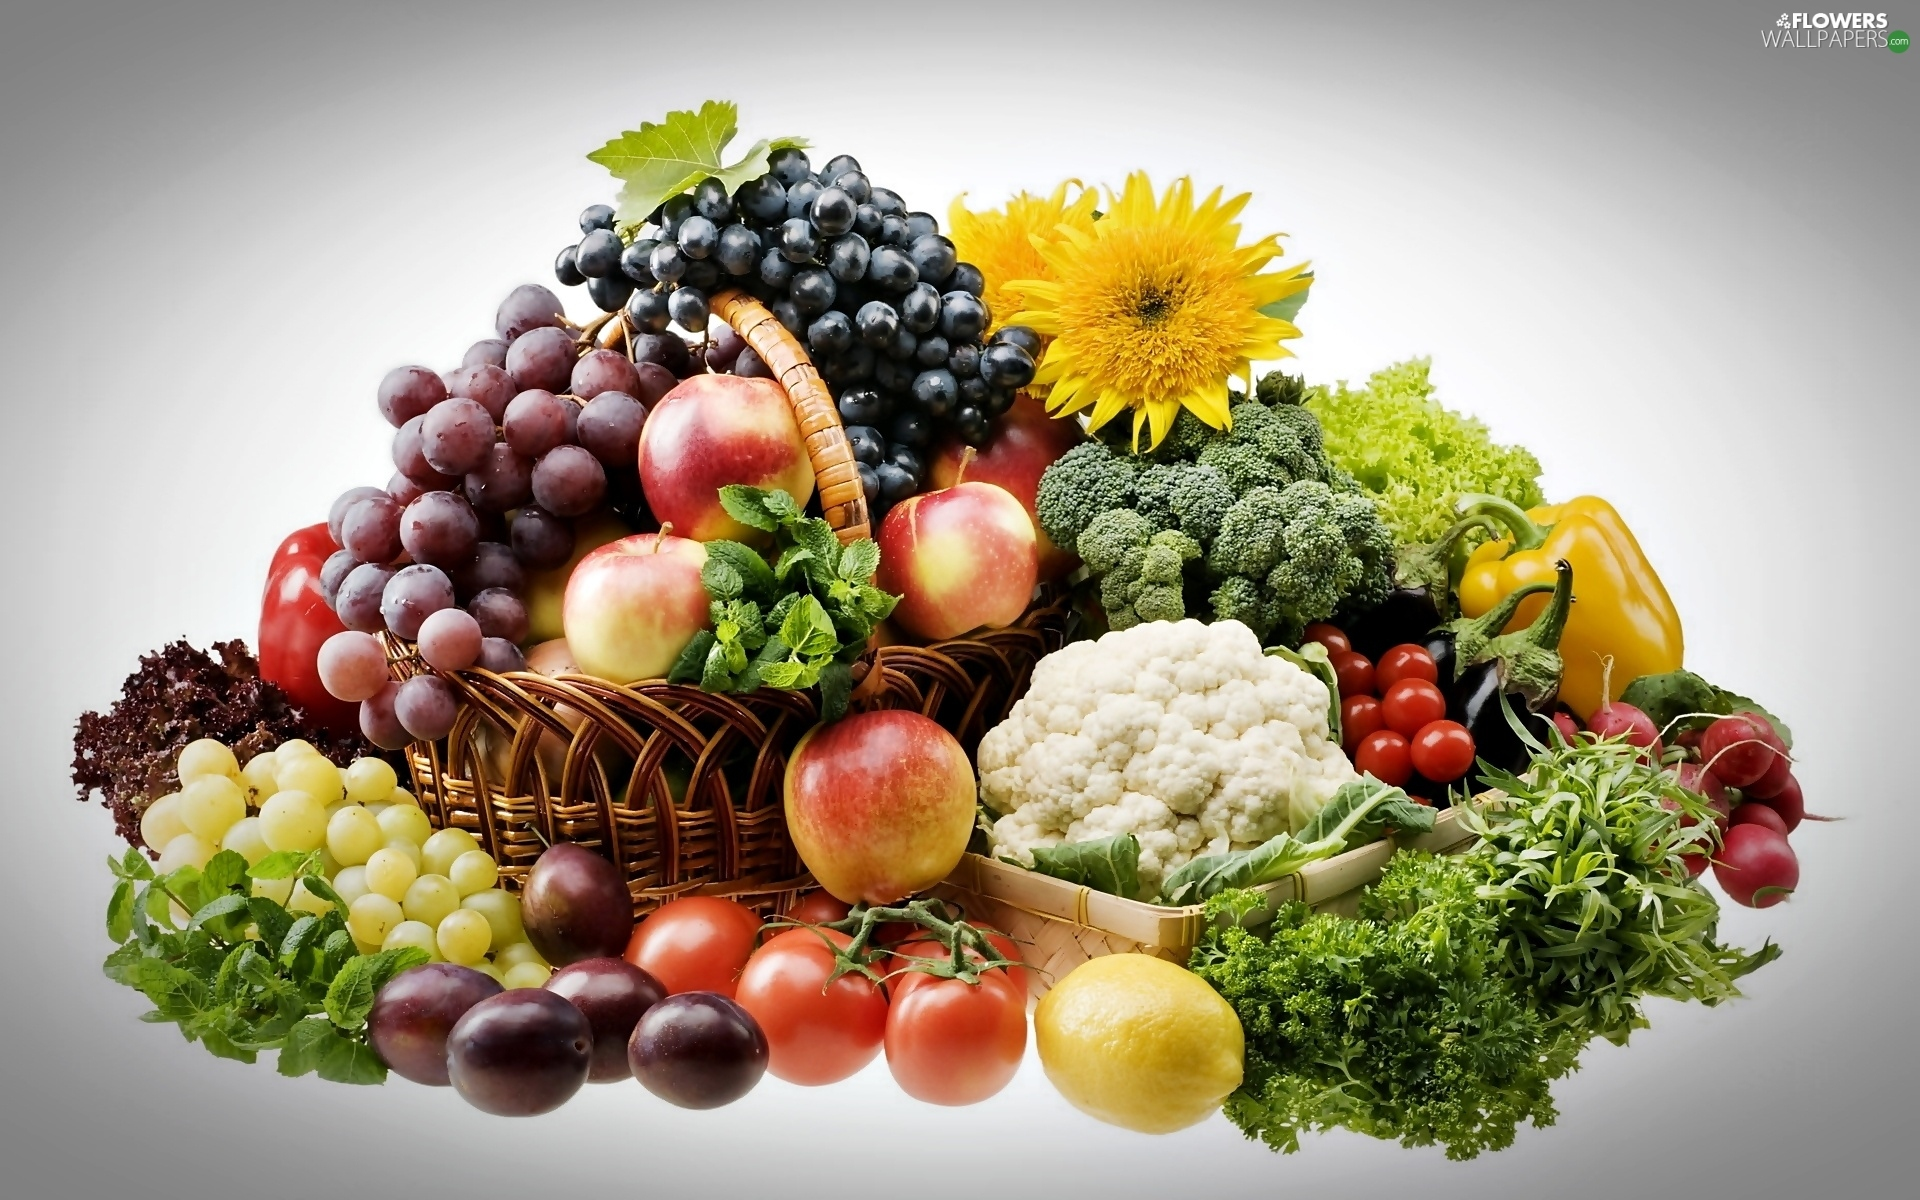 Flowers and fruits wallpapers - Grapes Flowers Apples Fruits Plums Vegetables